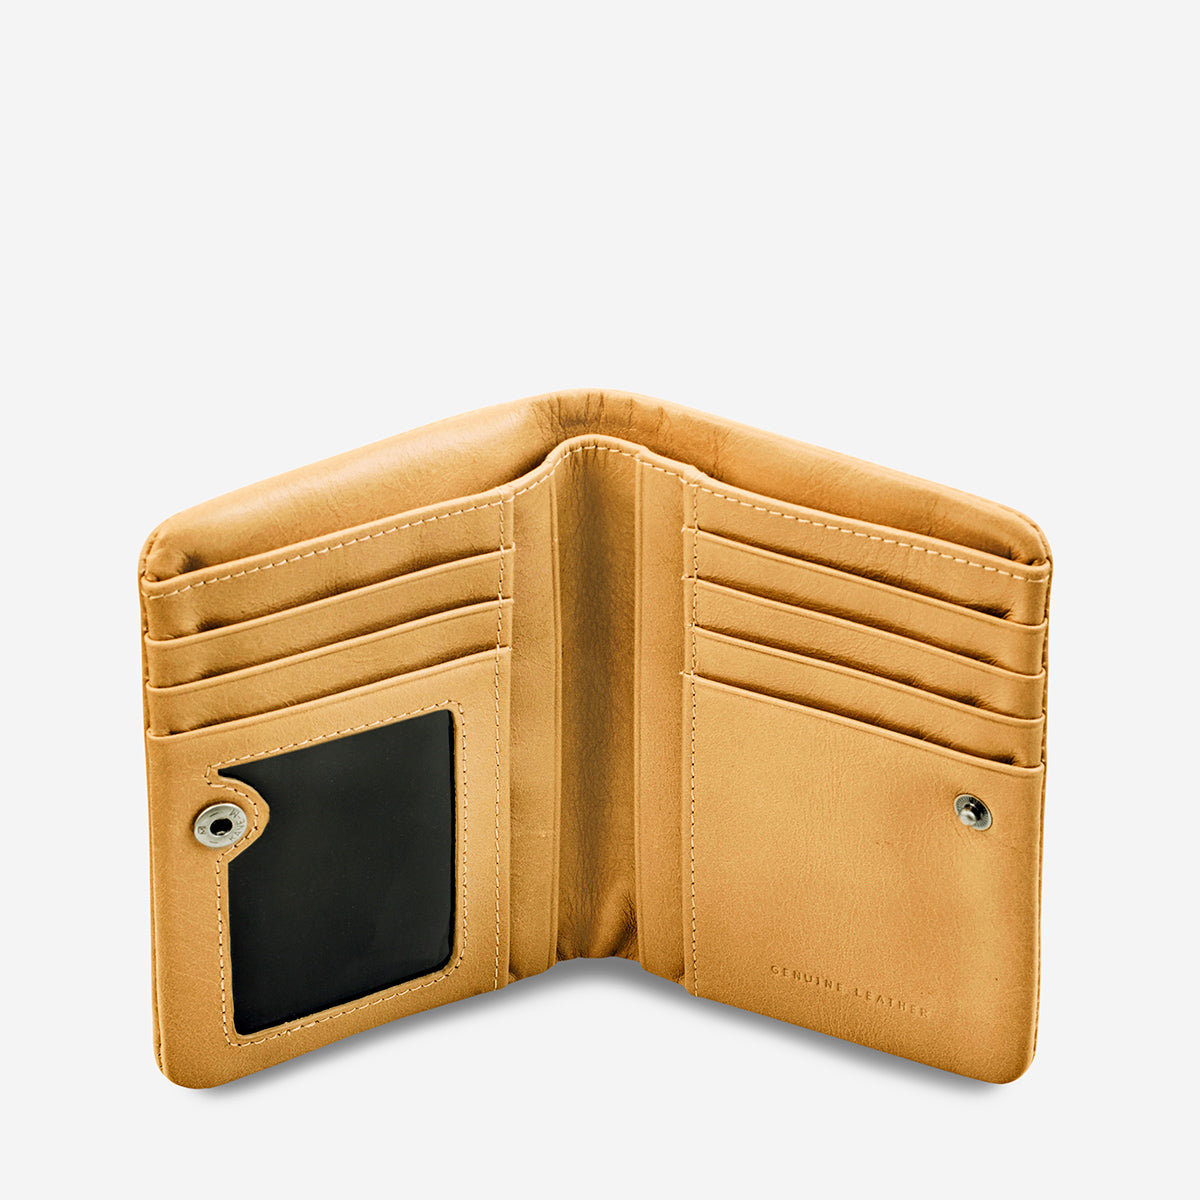 Status Anxiety Is Now Better Women's Small Leather Wallet - Tan